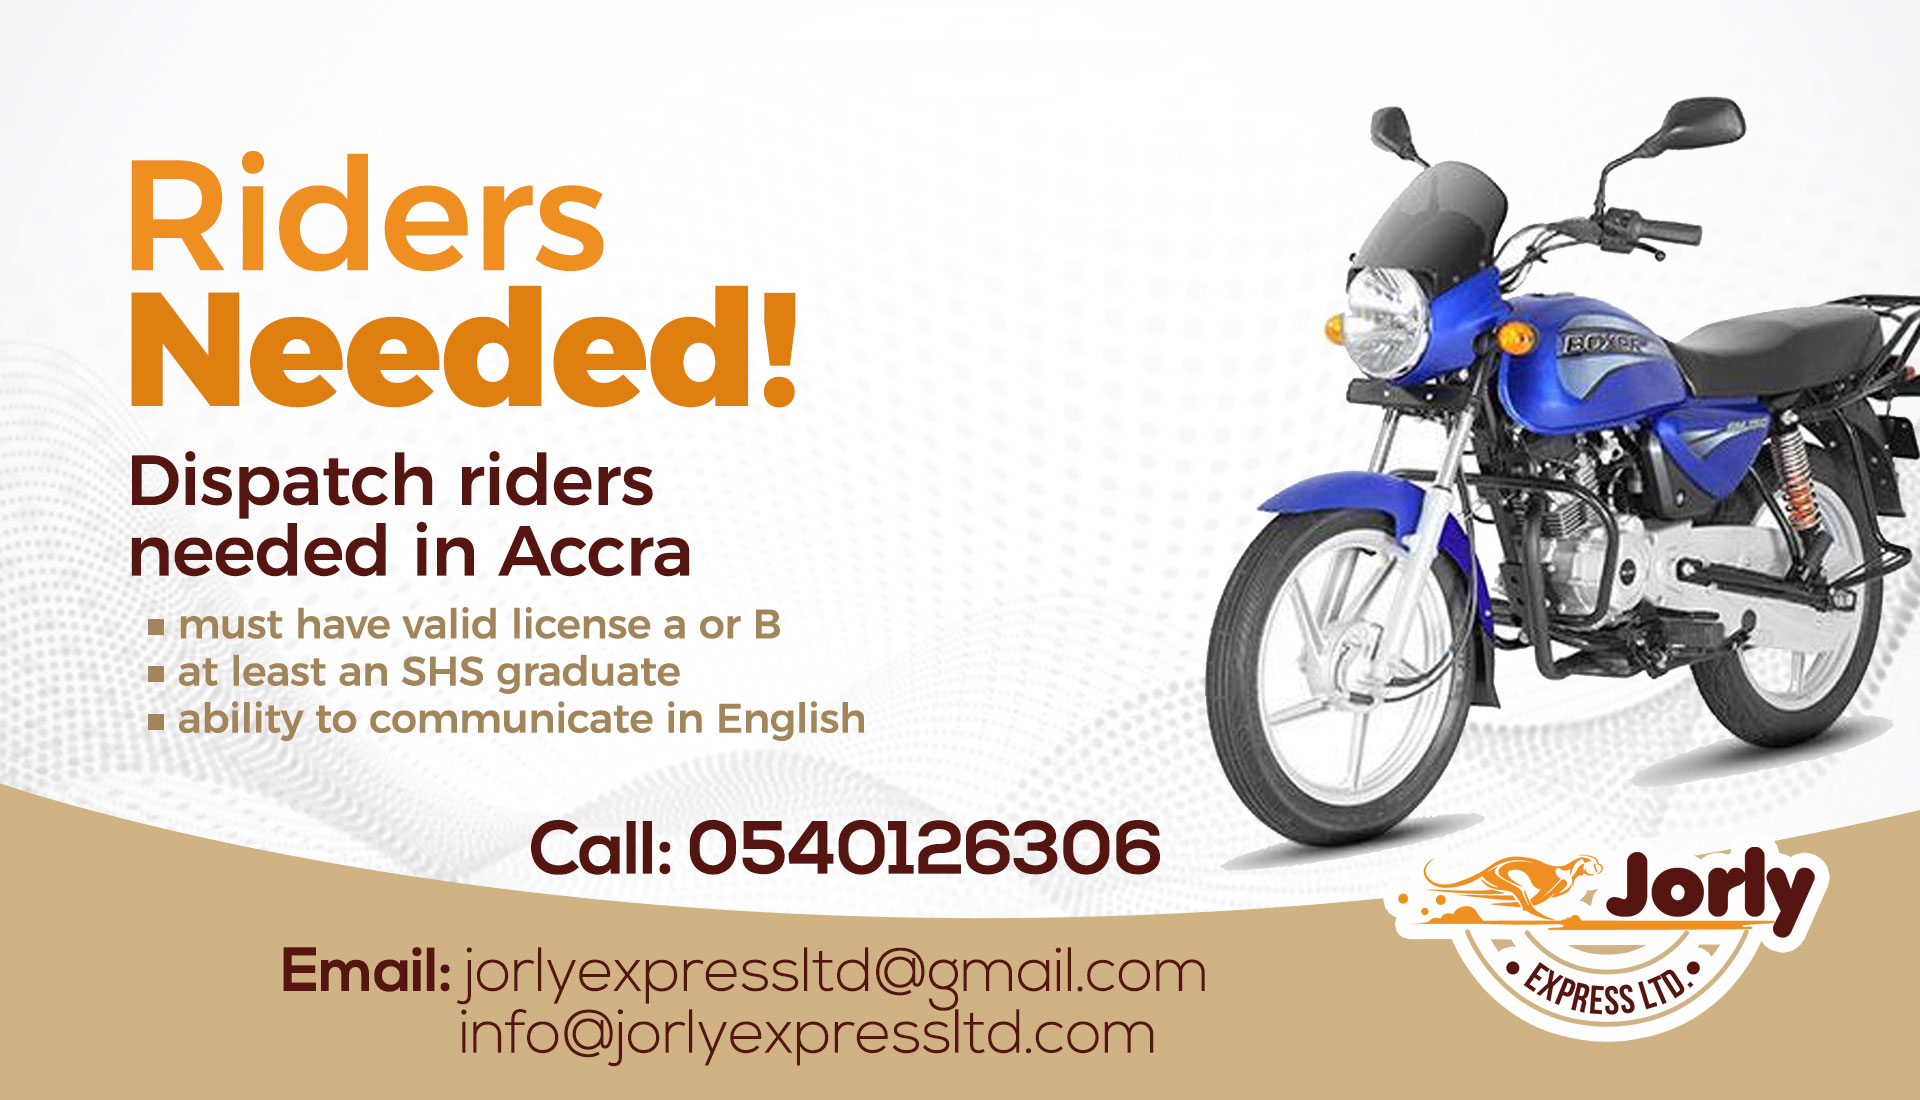 Riders needed - call Jorly Express Ltd today on 0540126306